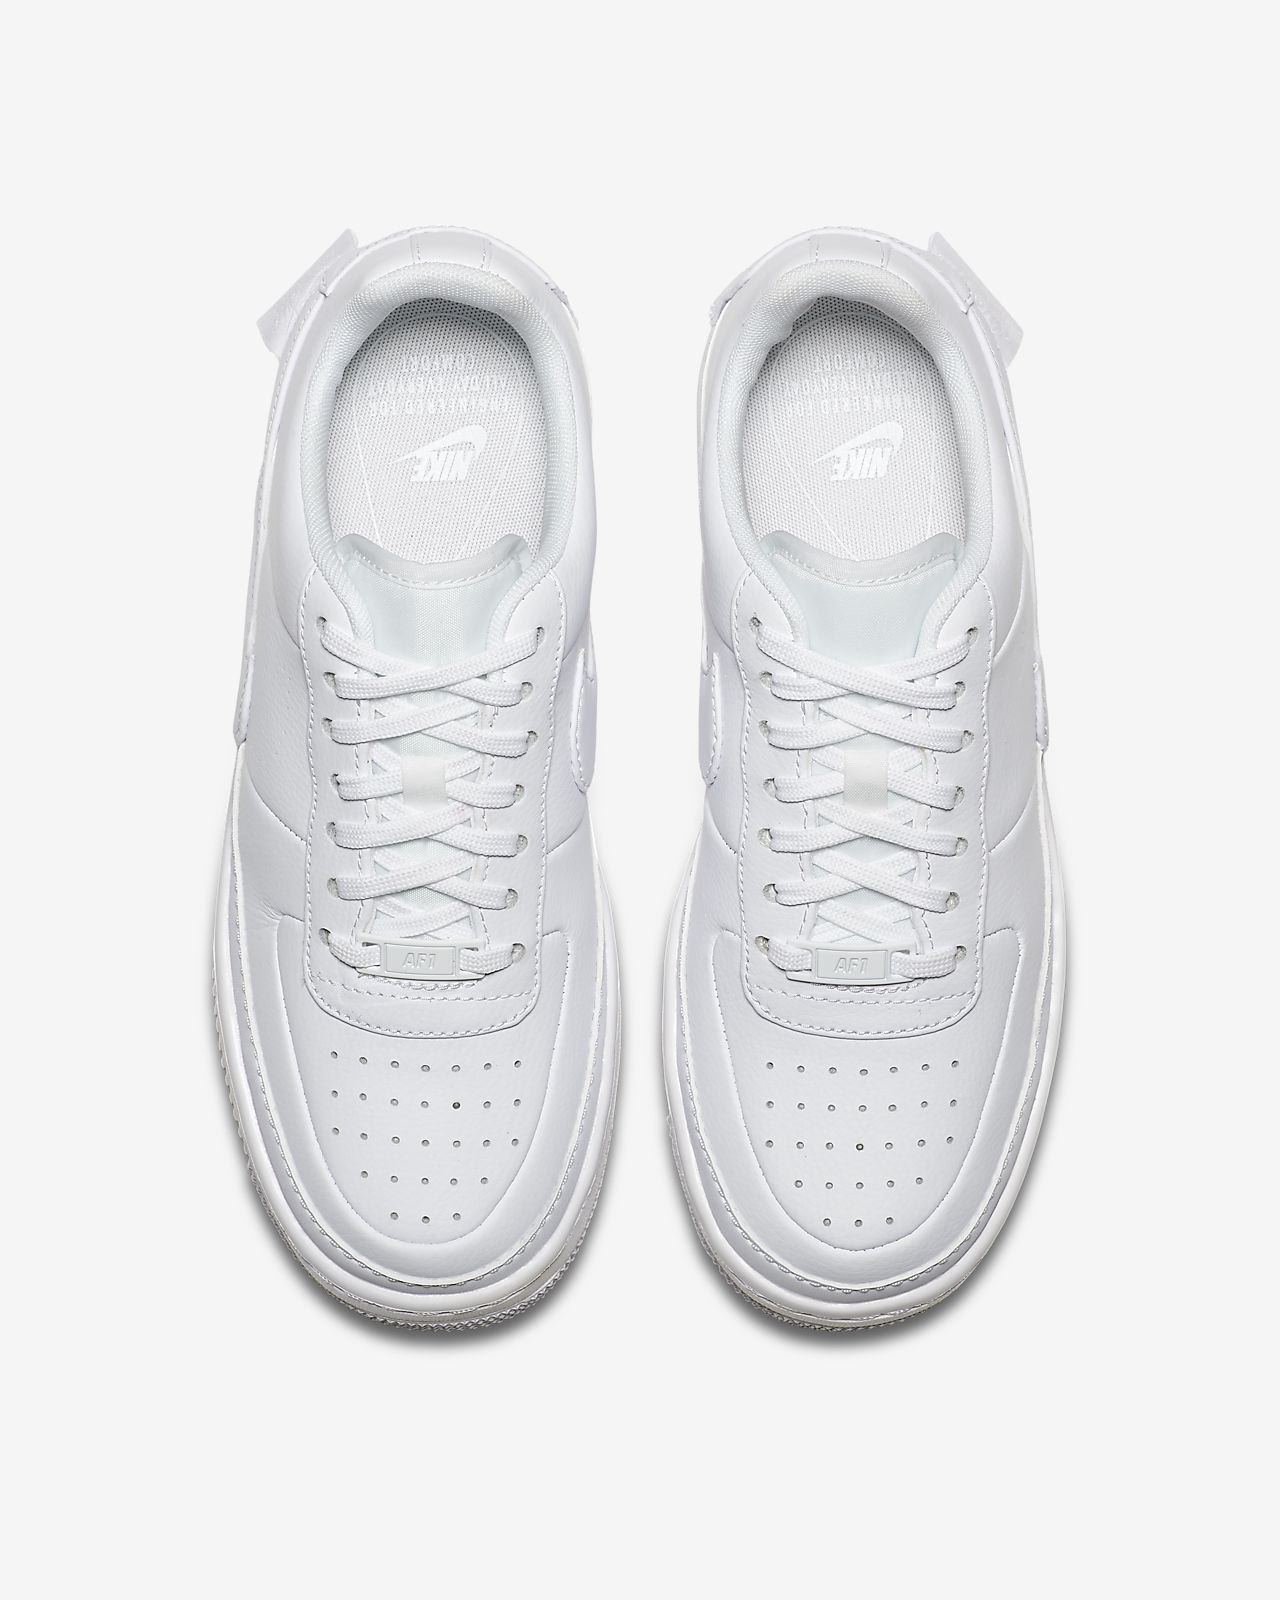 new arrival d5fba c028d ... Nike Air Force 1 Jester XX Shoe